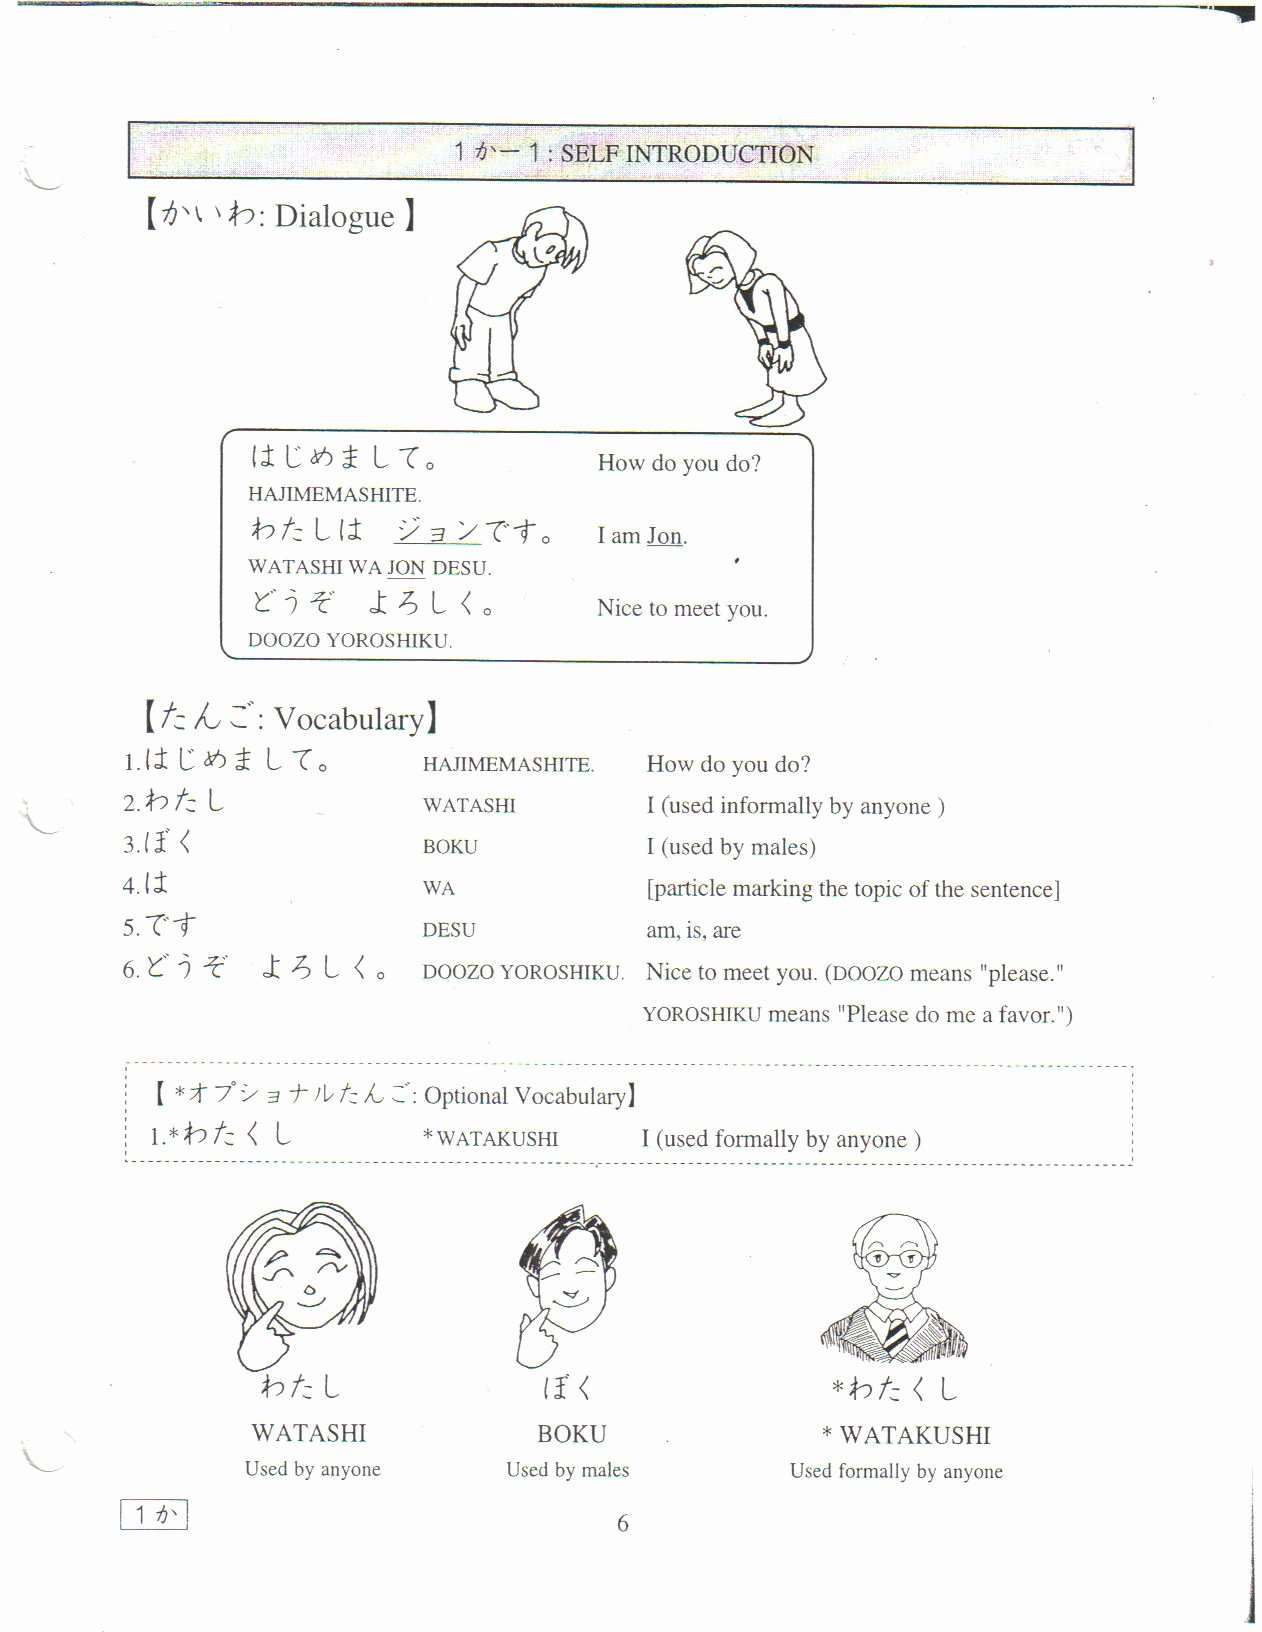 Japanese Worksheets for Beginners Printable Fresh Worksheets Learning Japanese Worksheets Self Introduction